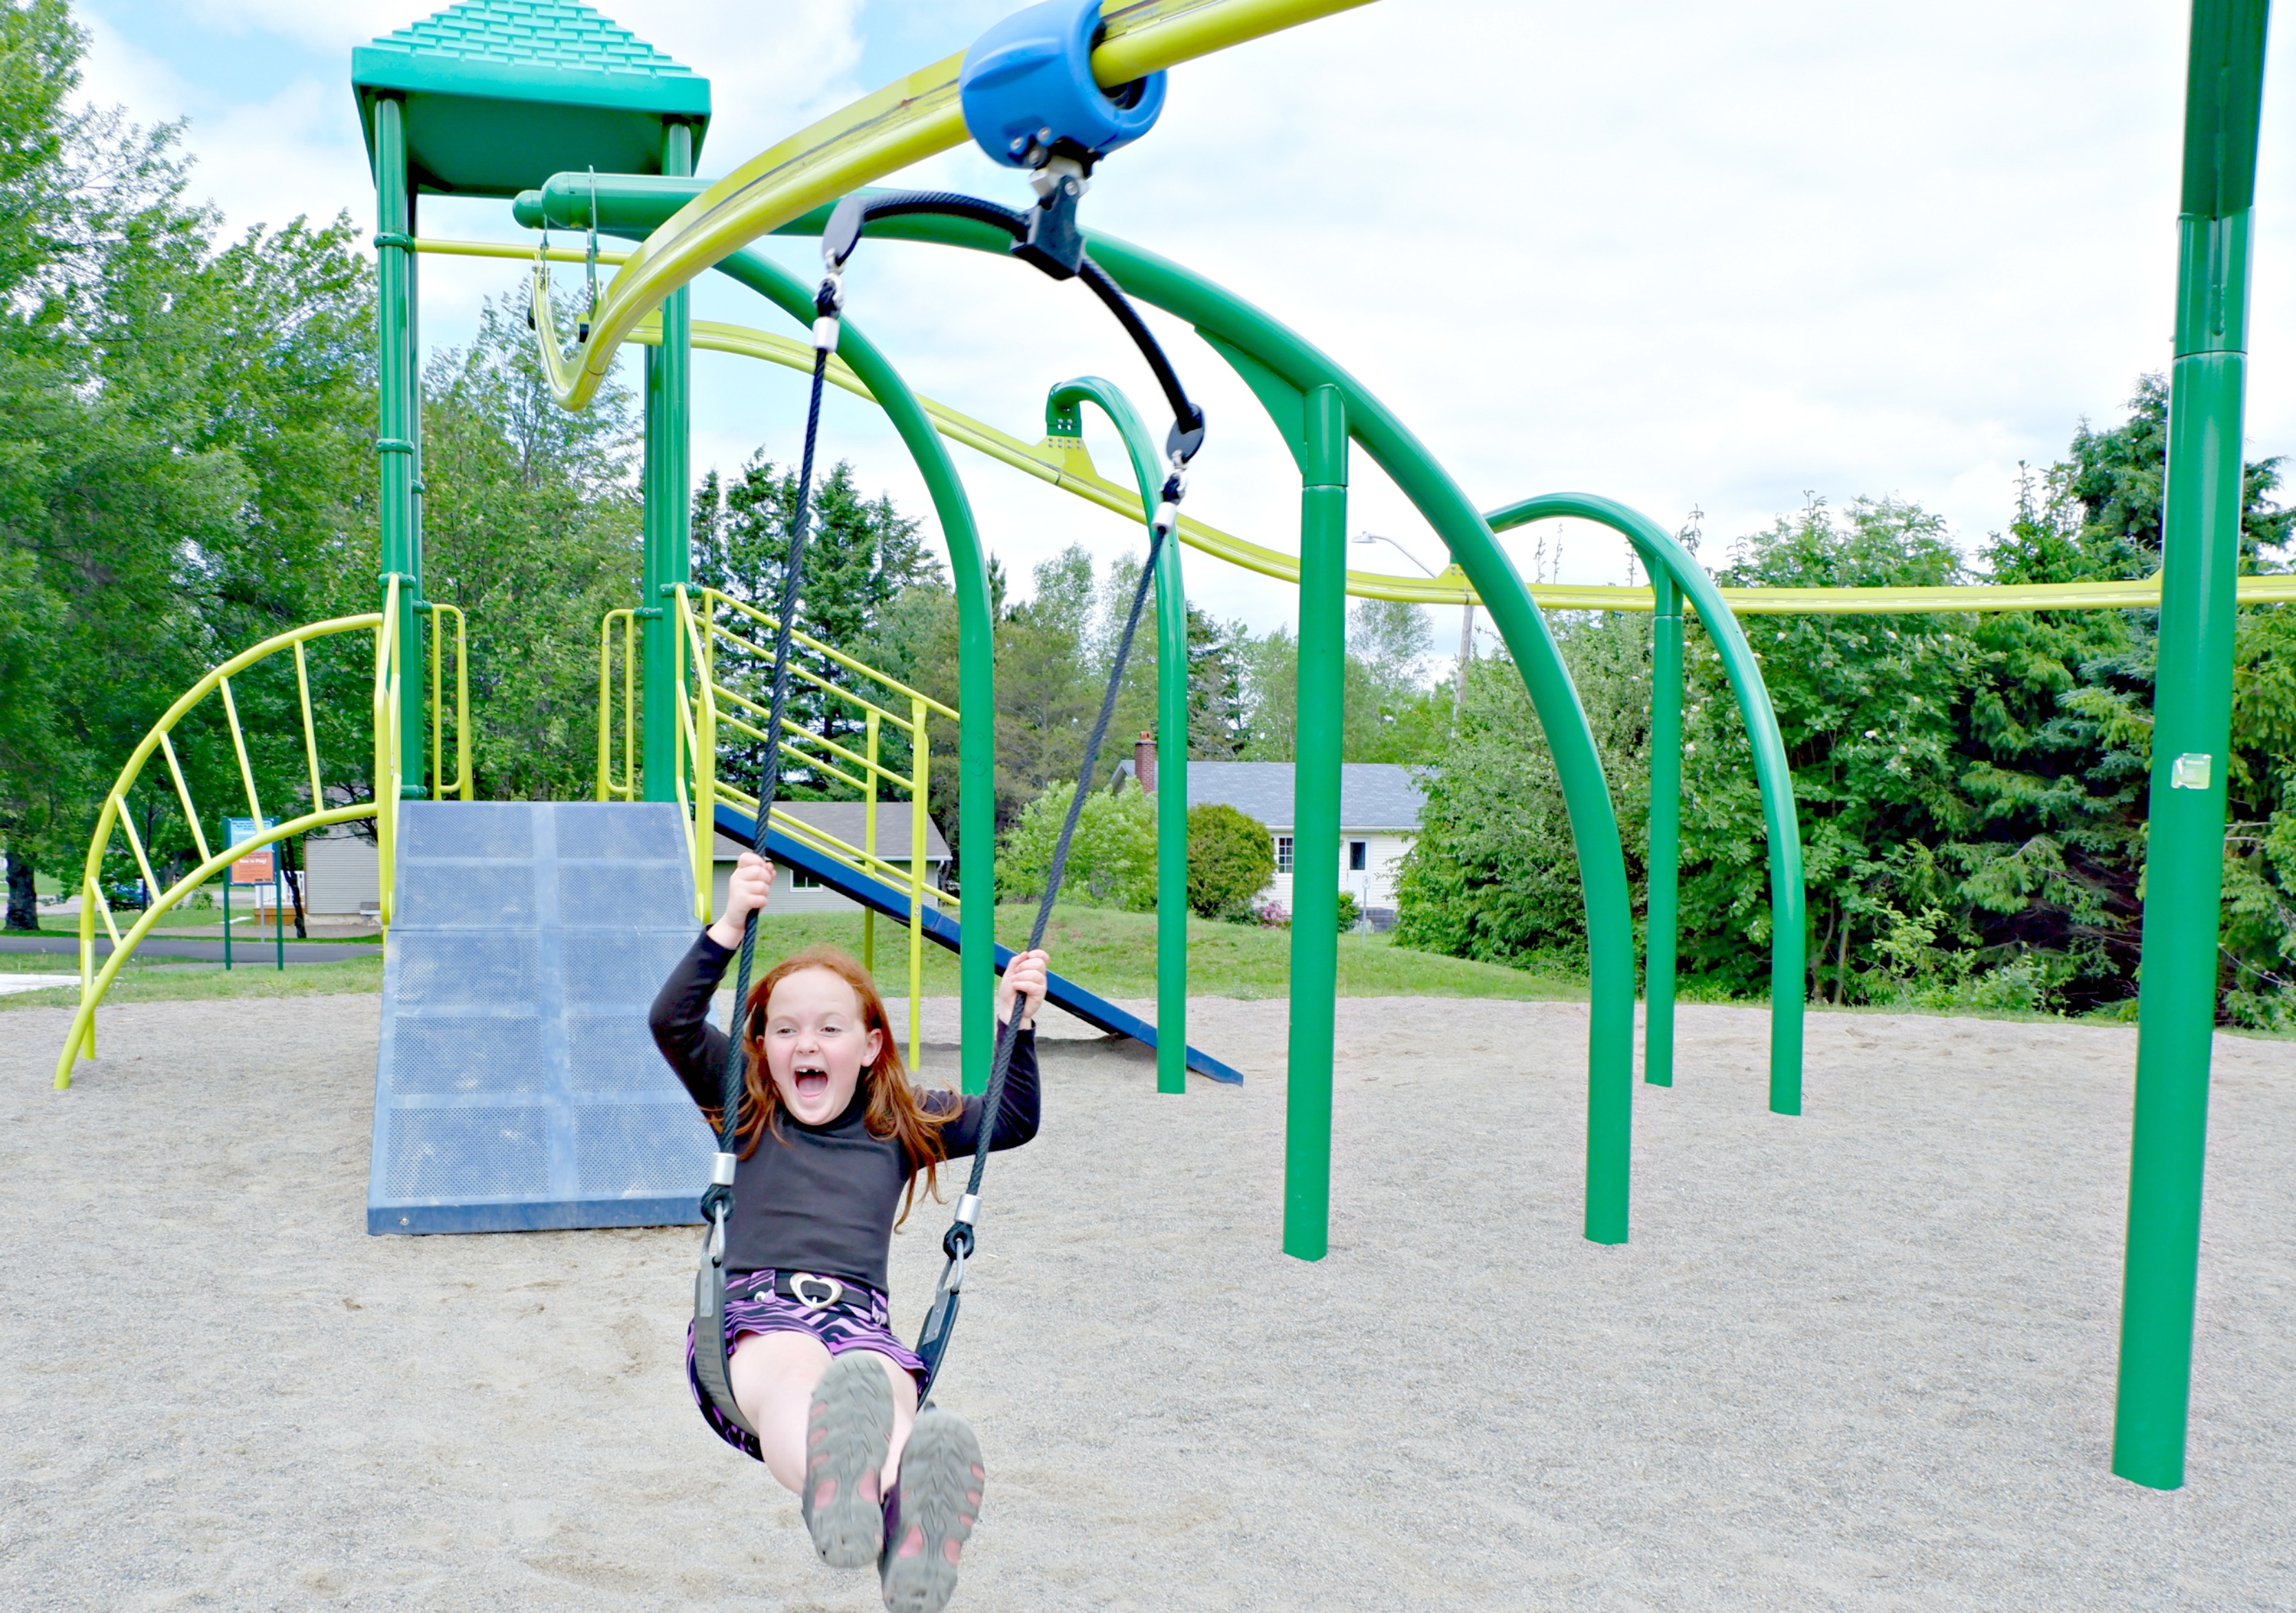 bridgedale playground riverview moncton dieppe best park play space pickle planet zipline scream